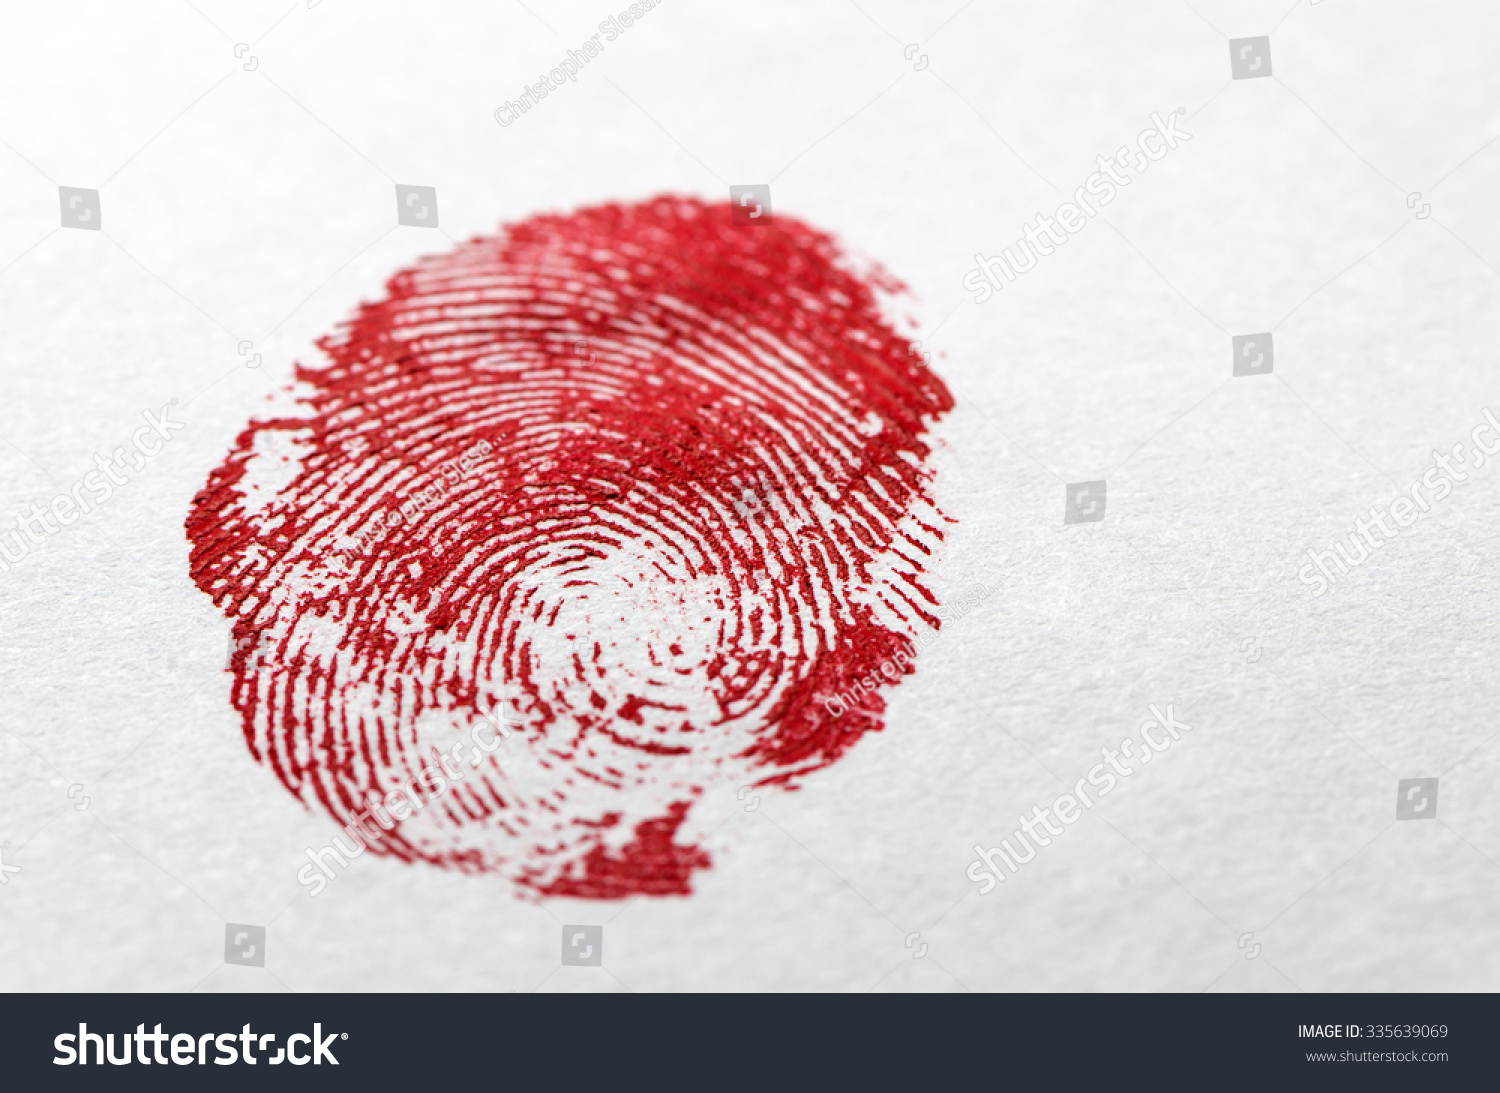 blood evidence essay Throughout the investigation, there were issues with how evidence was secured  there was about 15 ml of oj simpson's blood assumed missing from a vial.